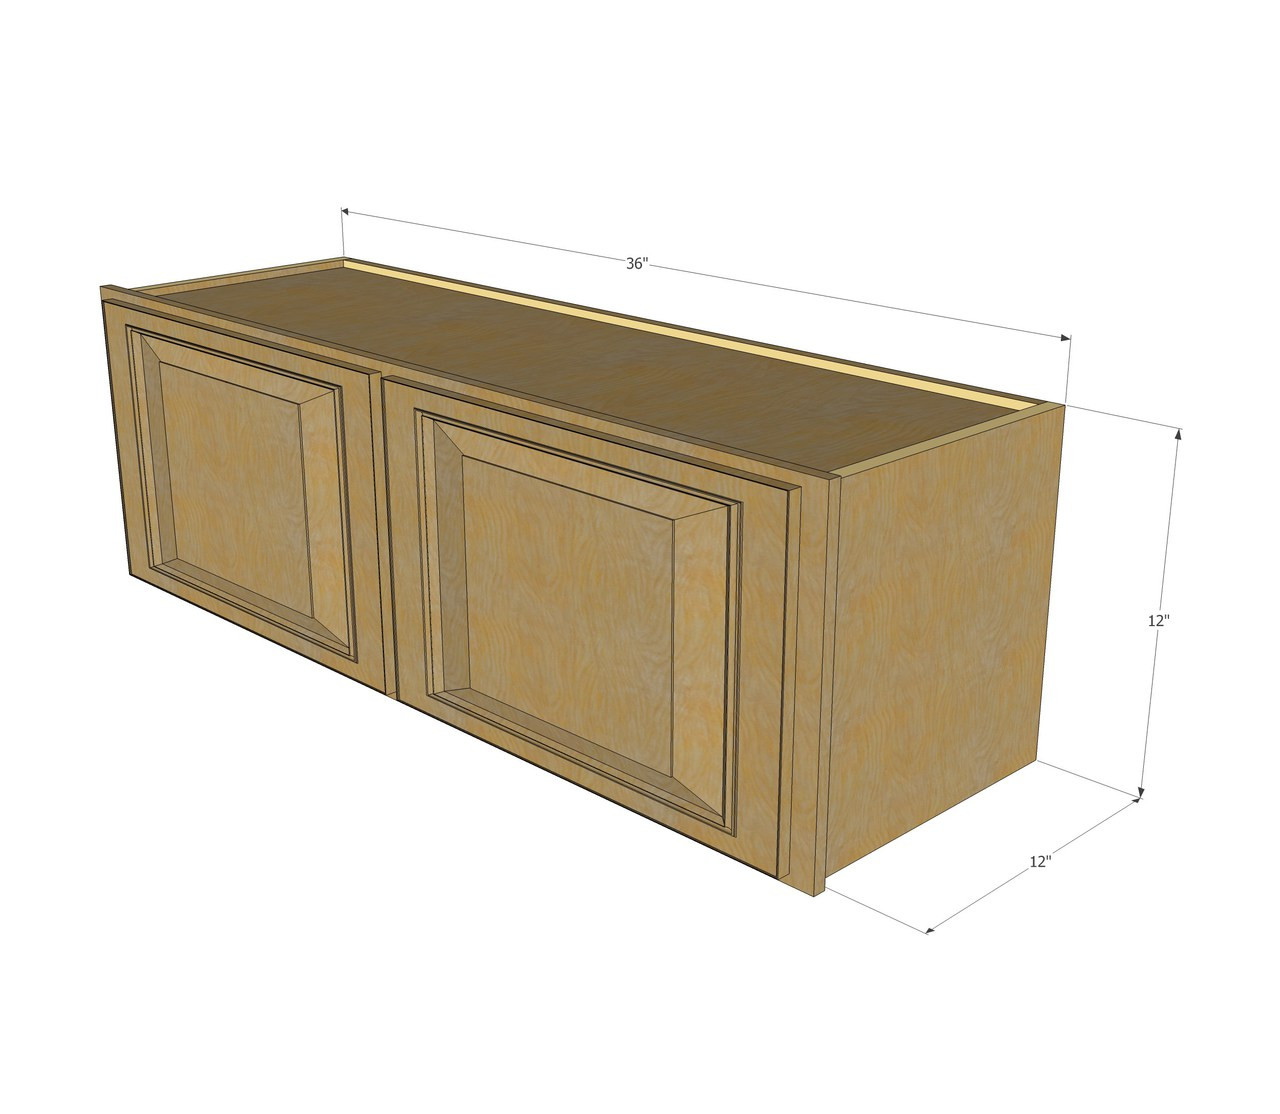 Regal oak horizontal overhead wall cabinet 36 inch wide for 12 kitchen cabinets